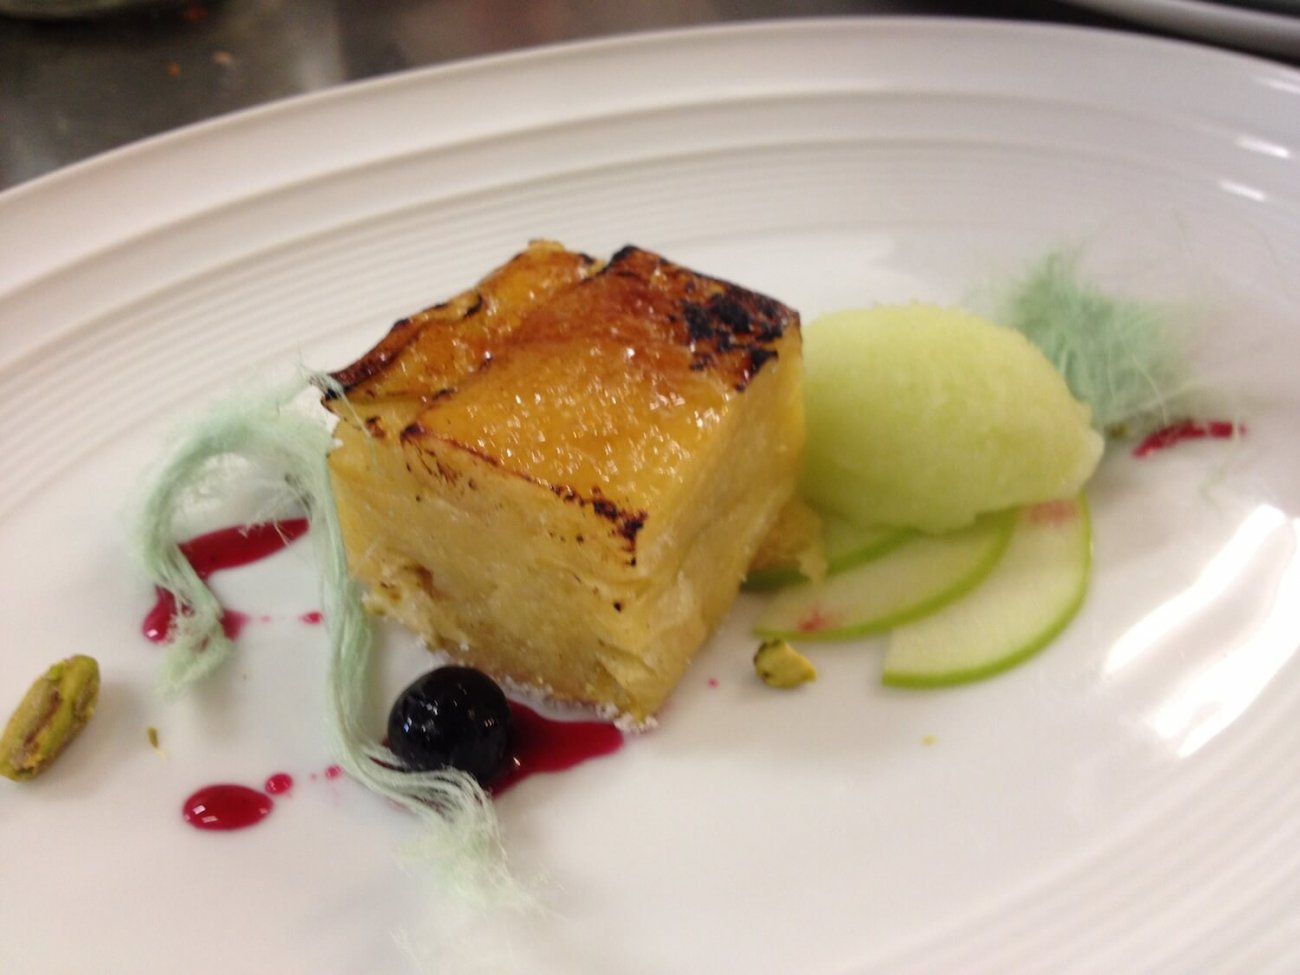 VANILLA AND APPLE PAIN PERDU, APPLE SORBET AND BLUEBERRY COMPOTE